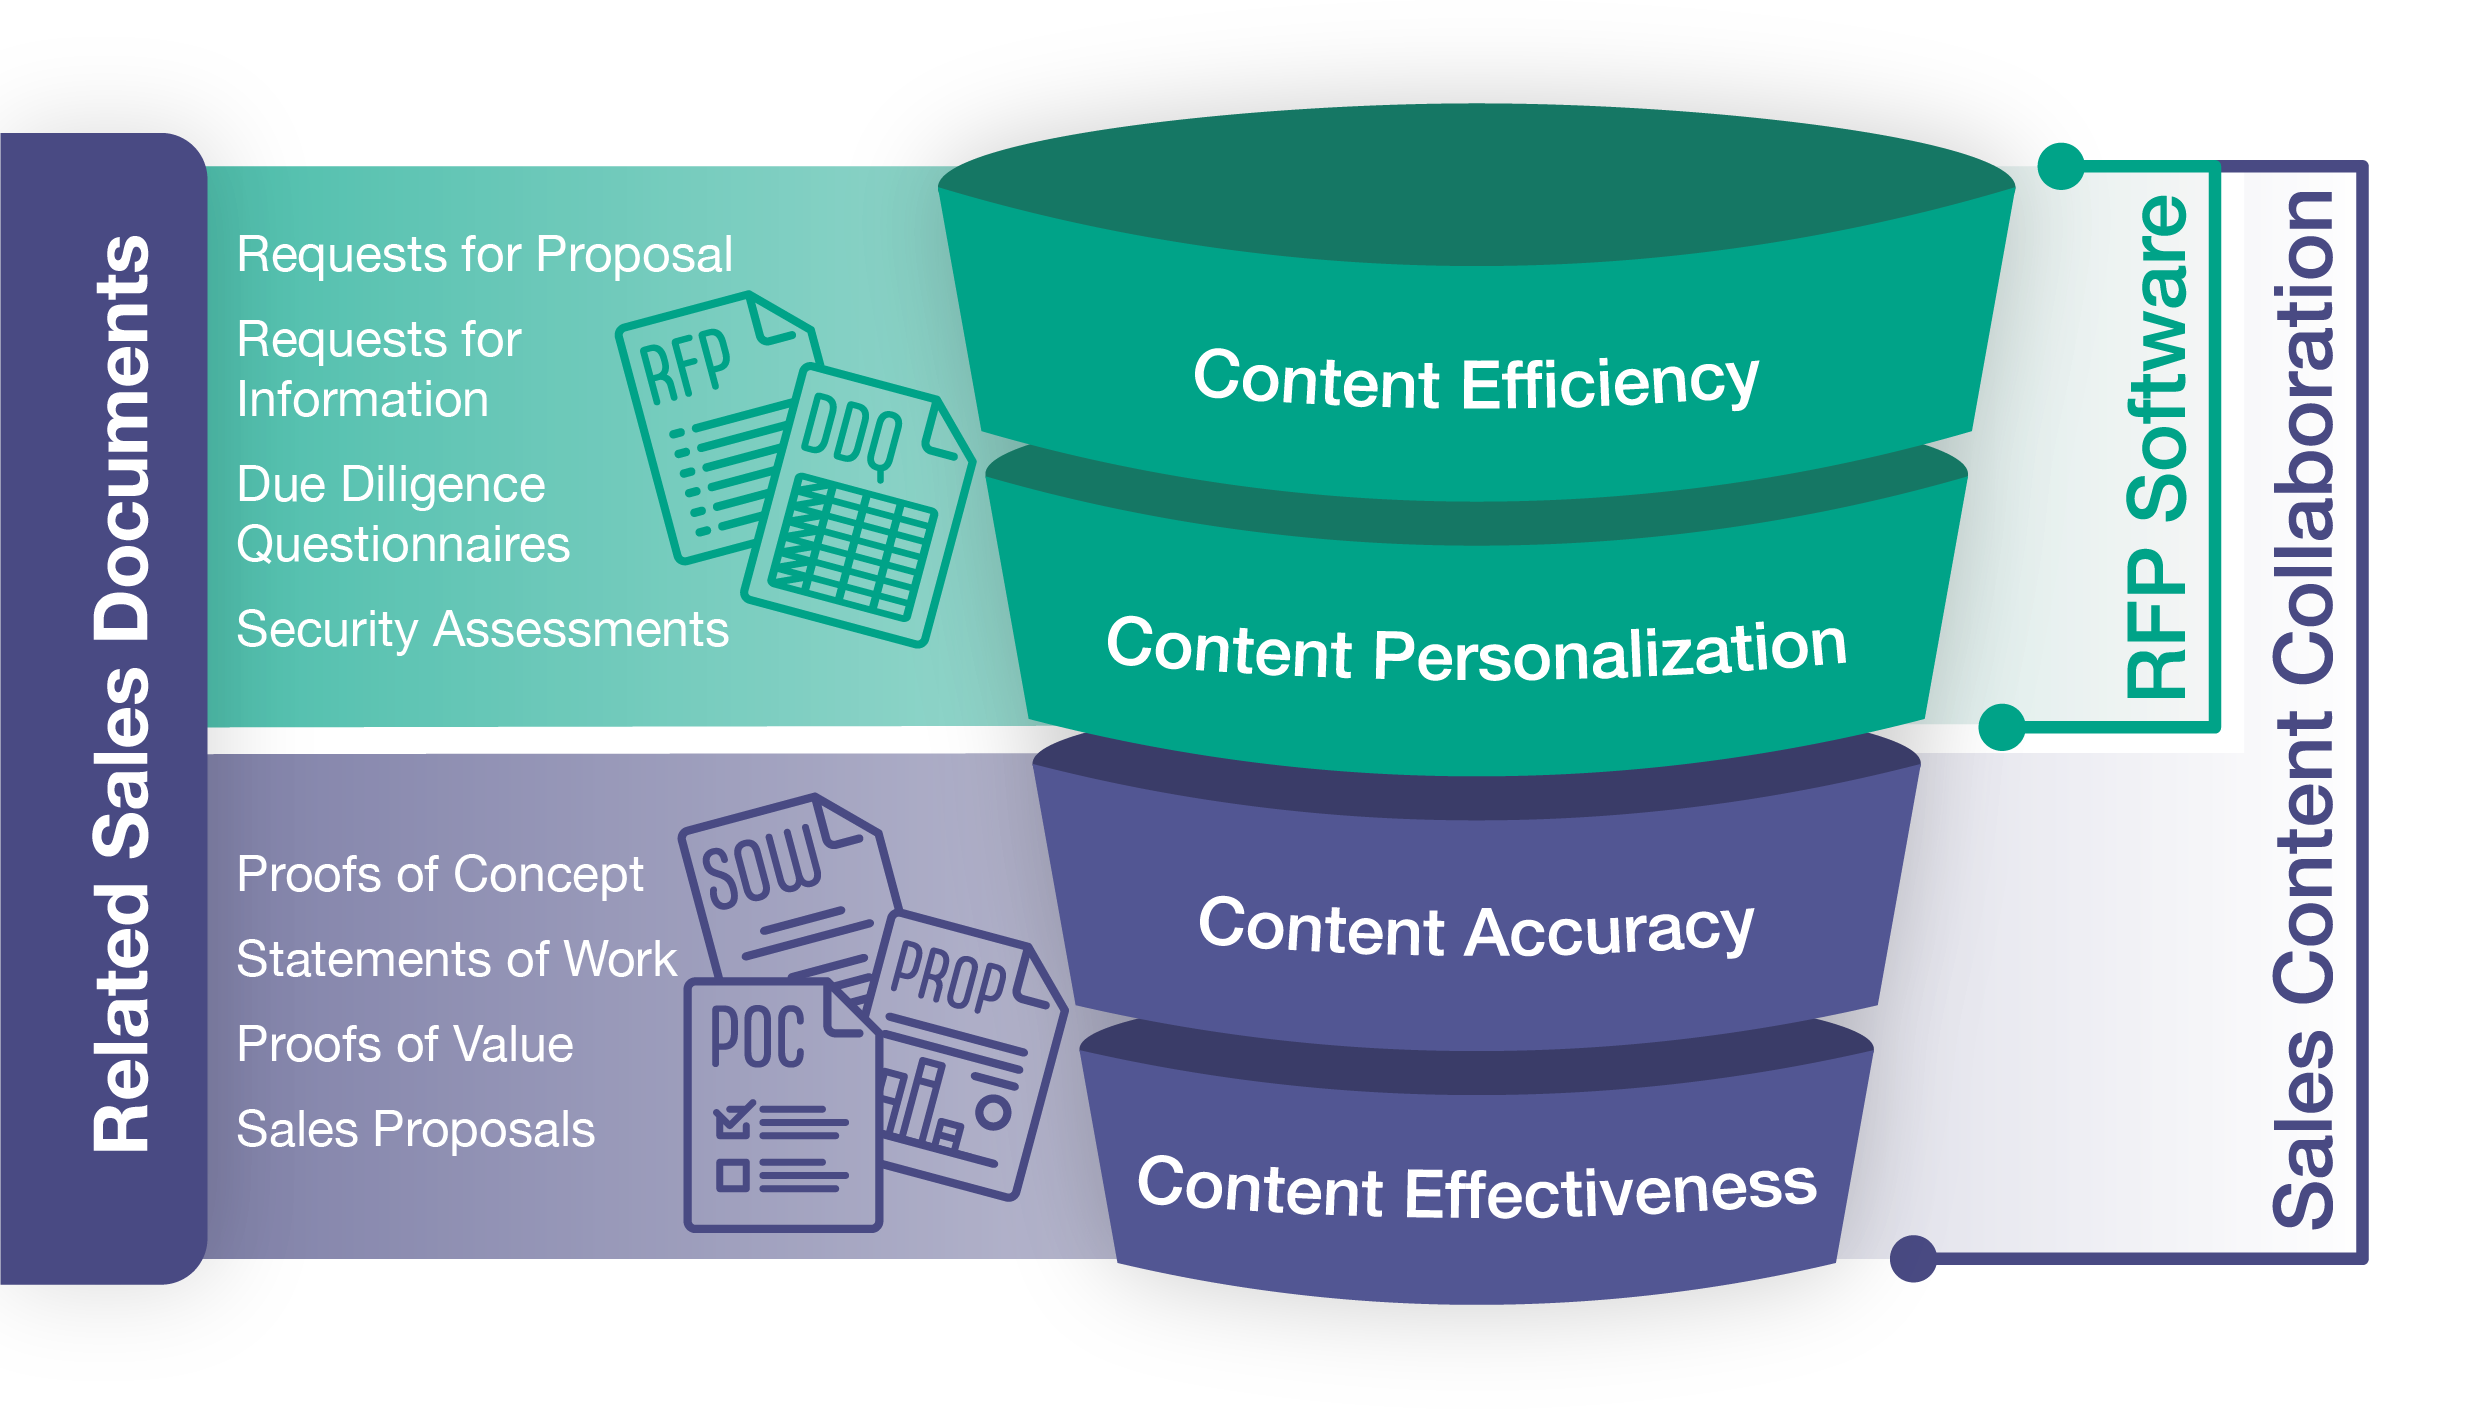 Requests for Proposal Software focuses on Content Efficiency and Content Personalization (with typical use cases being RFPs and Security Questionnaires. Sales Content Collaboration, on the other hand, satisfies both efficiency and personalization while also satisfying Content Accuracy and Content Effectiveness (with typical use cases also including POCs, SOWs, and Proposals)